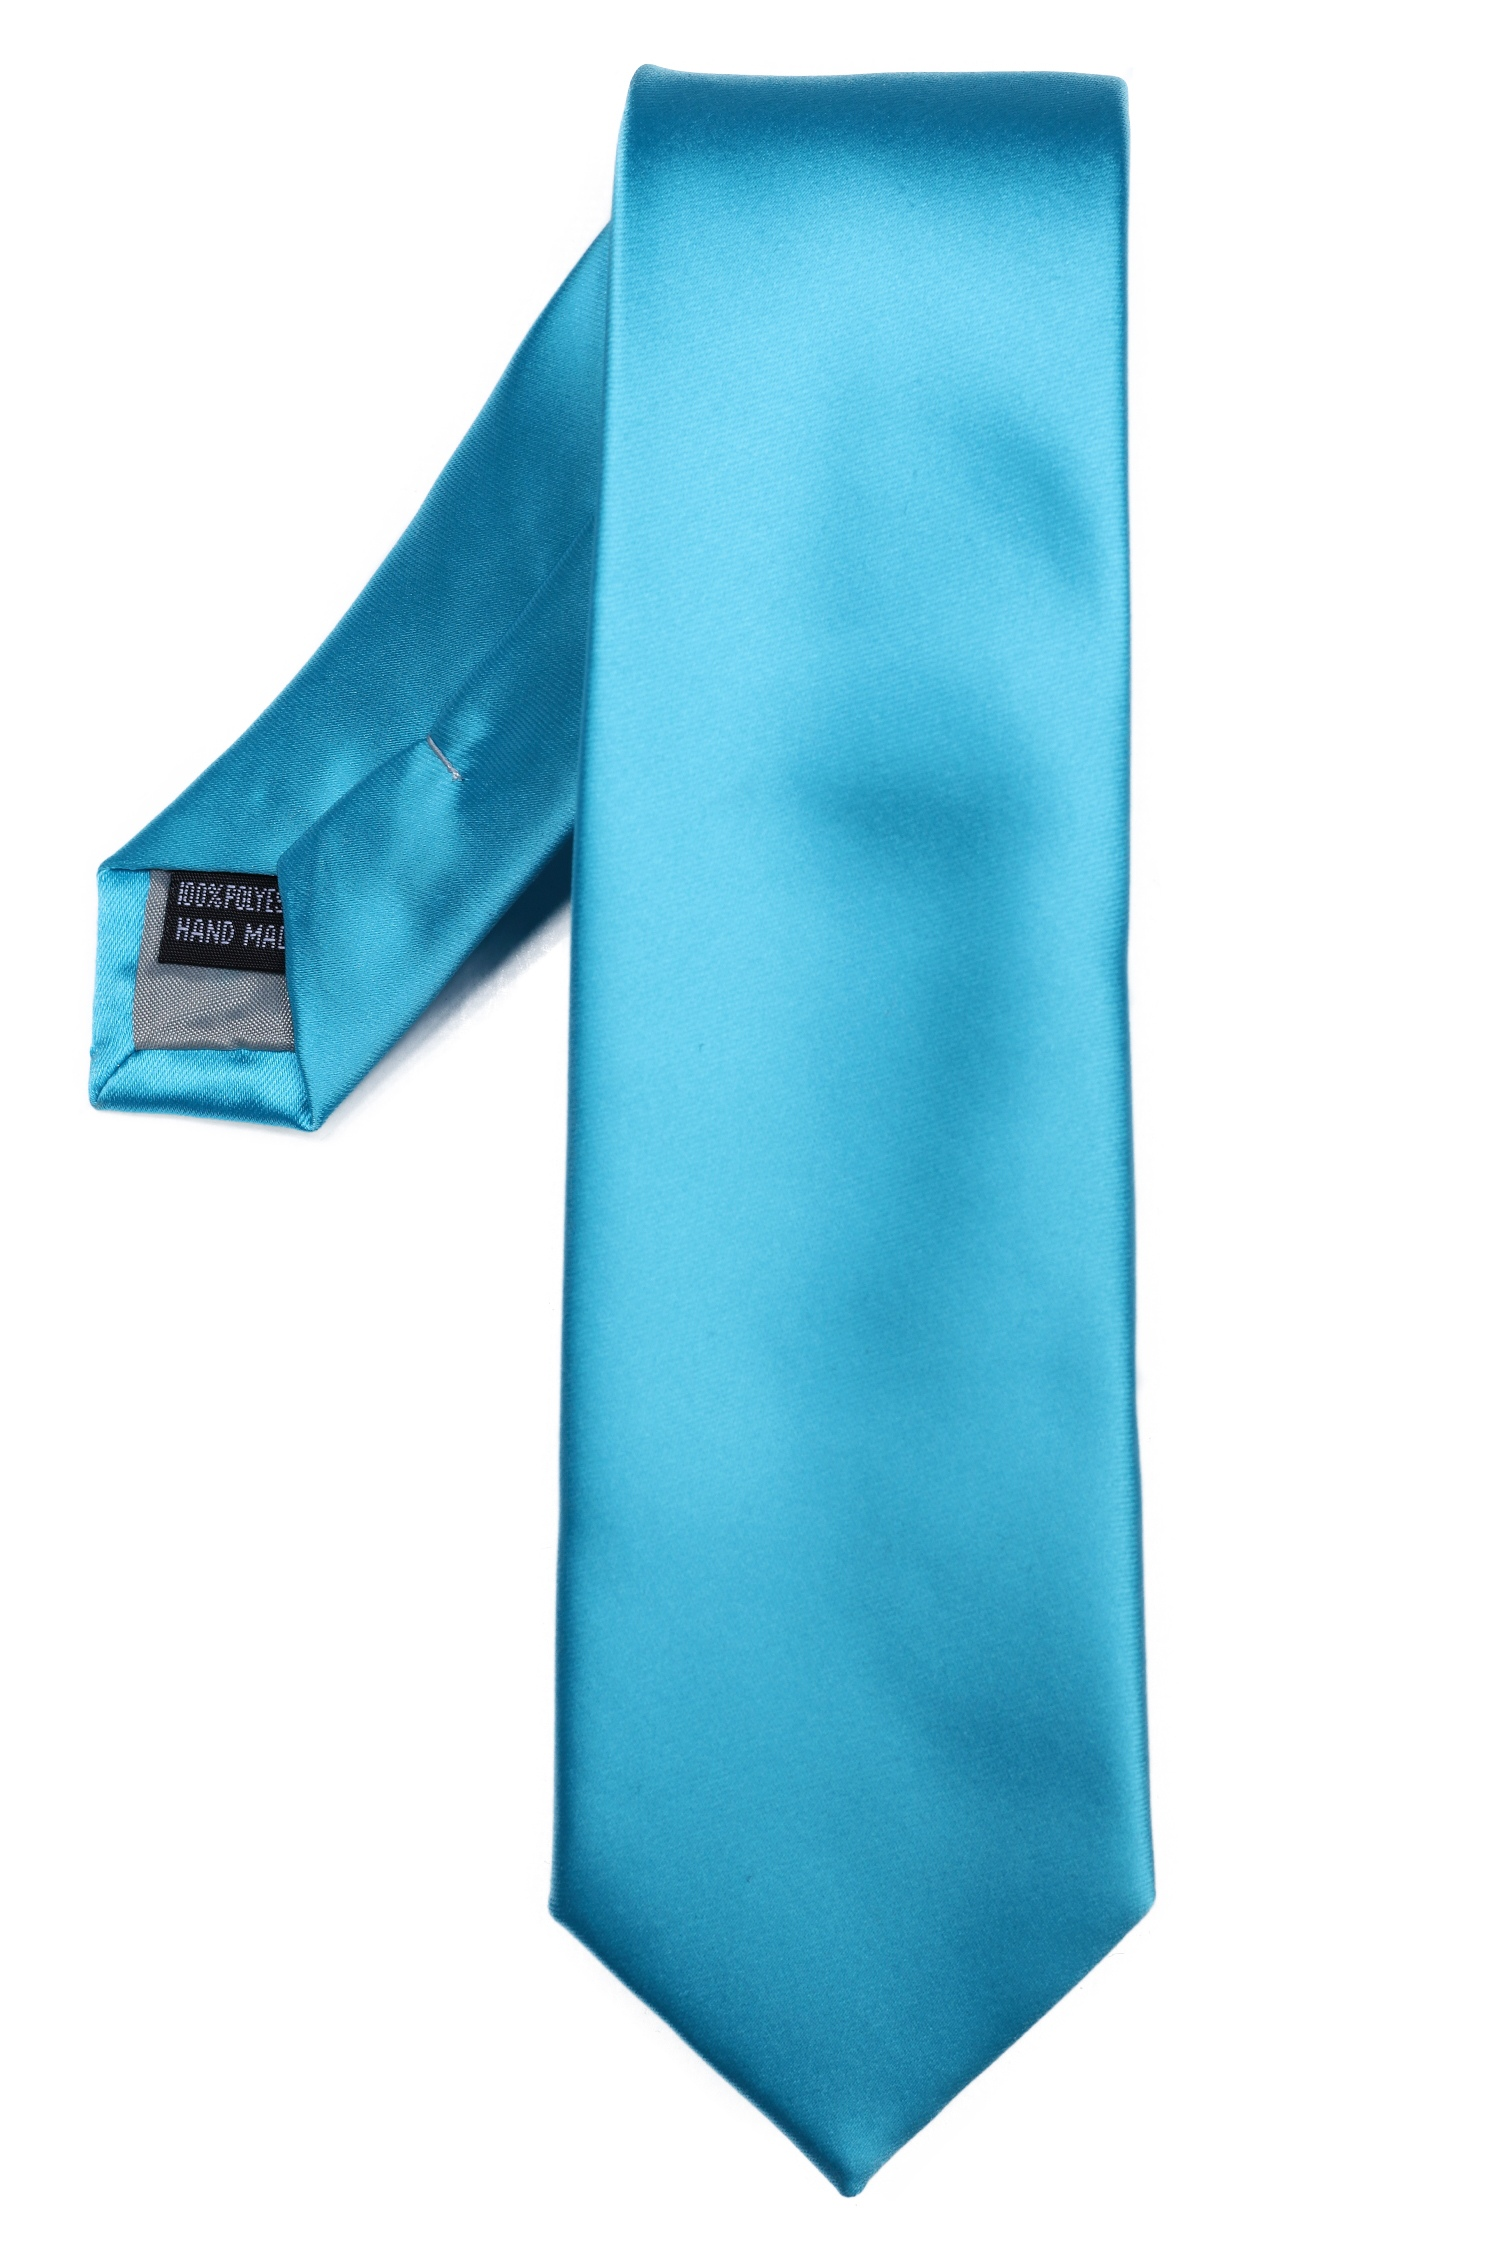 http://www.leadermode.com/170428/virtuose-slim-turquoise.jpg